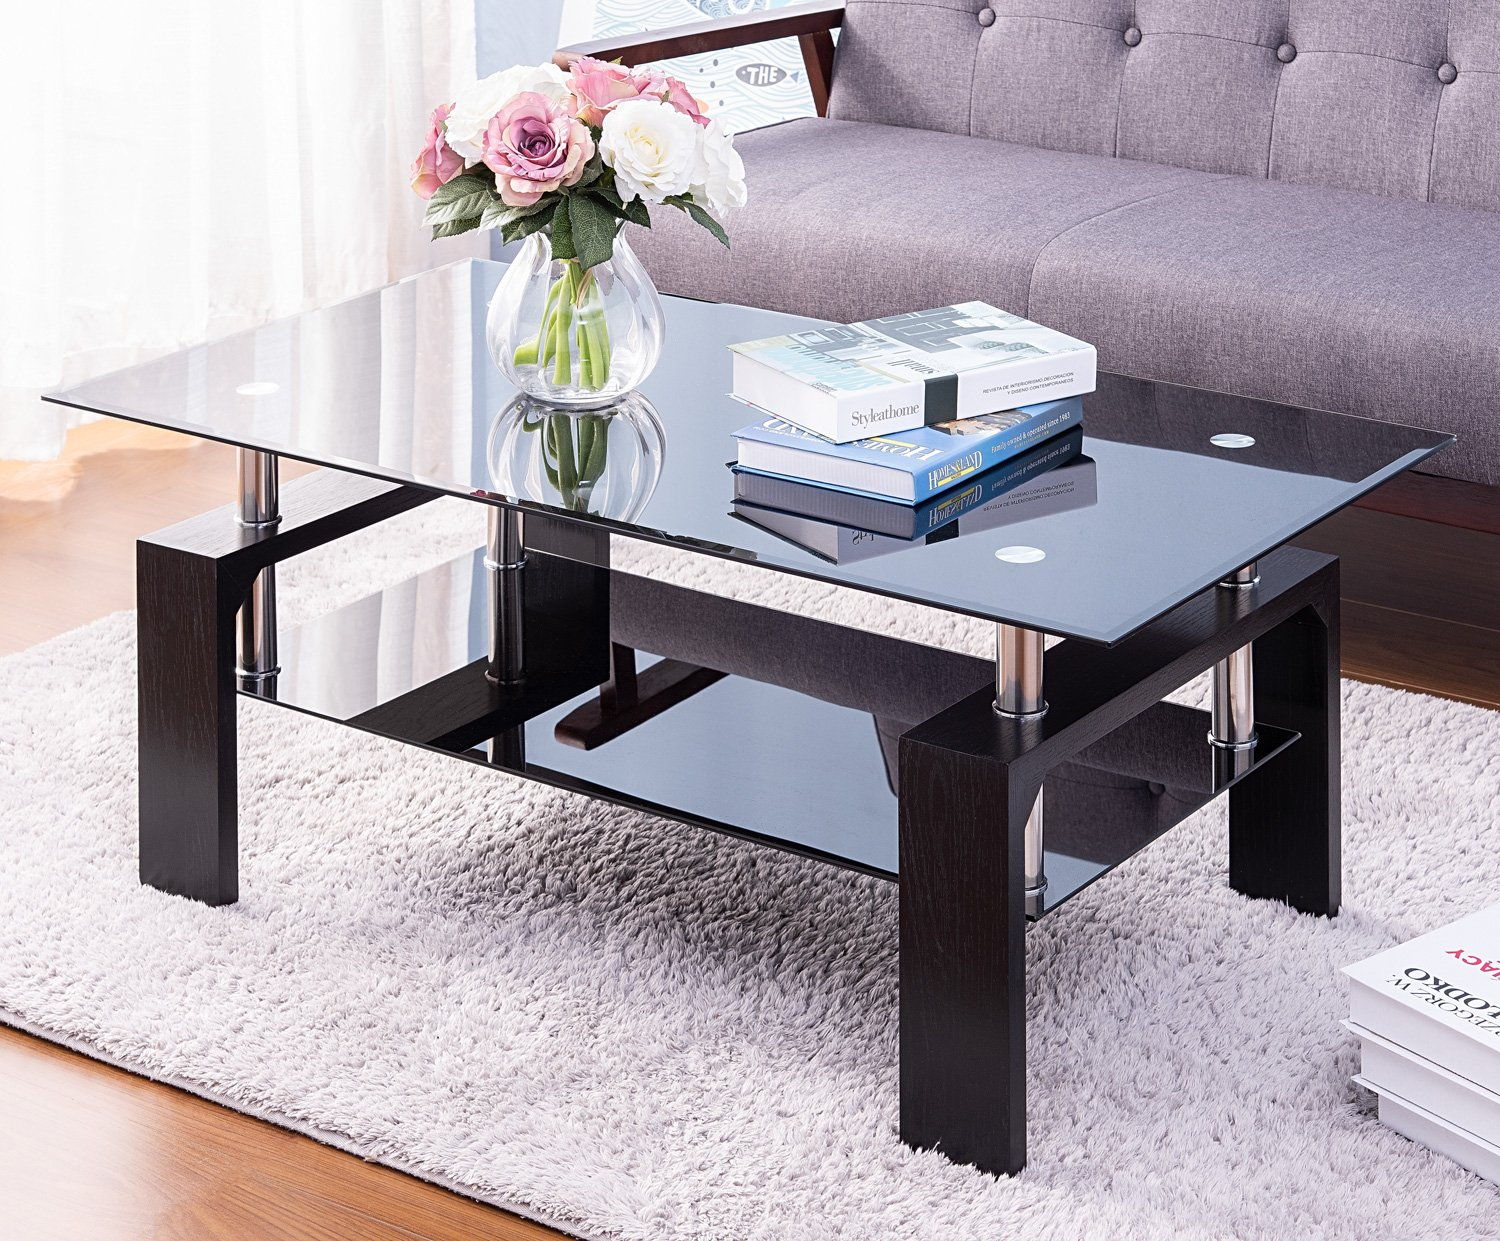 glass coffee table for living room modern rectangle cocktail tea table sofa table with 2 tier tempered glass boards wood legs mid century design